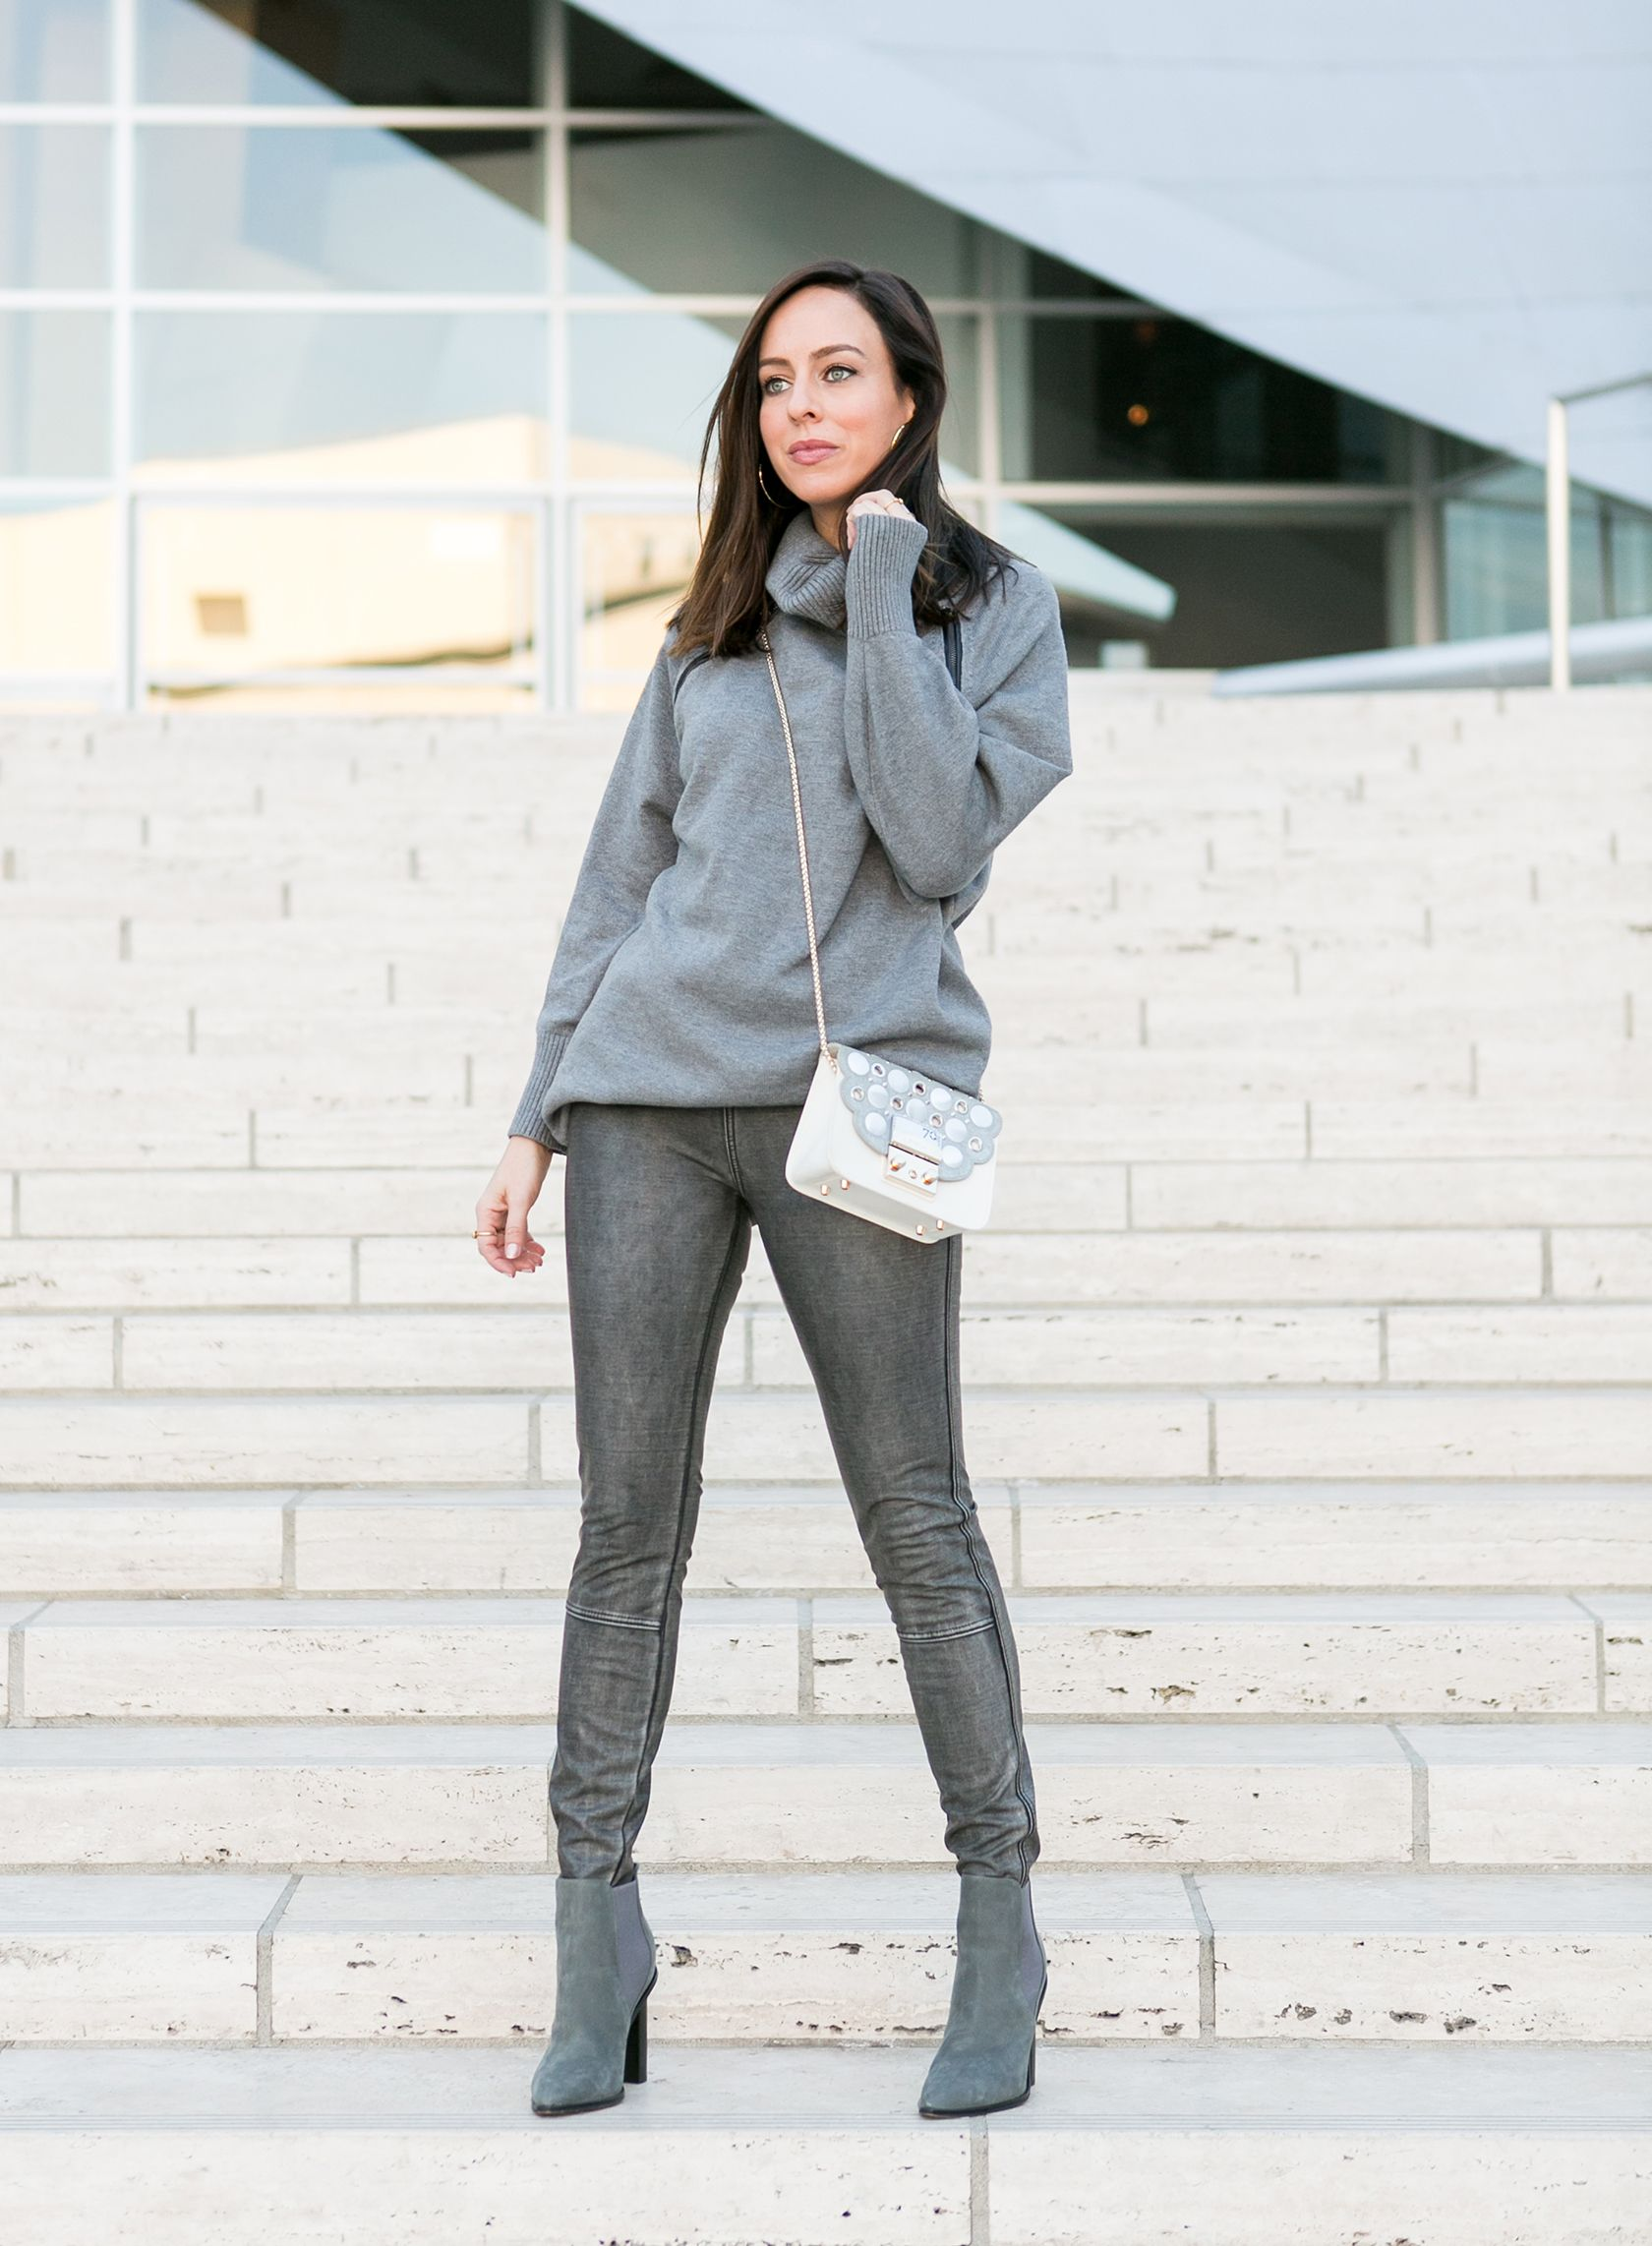 5a8b3f14f94e3 Sydne Style shows how to wear leather leggings in lysee silver pants #gray  #falloutfits #silver #metallics #turtleneck #leatherleggings